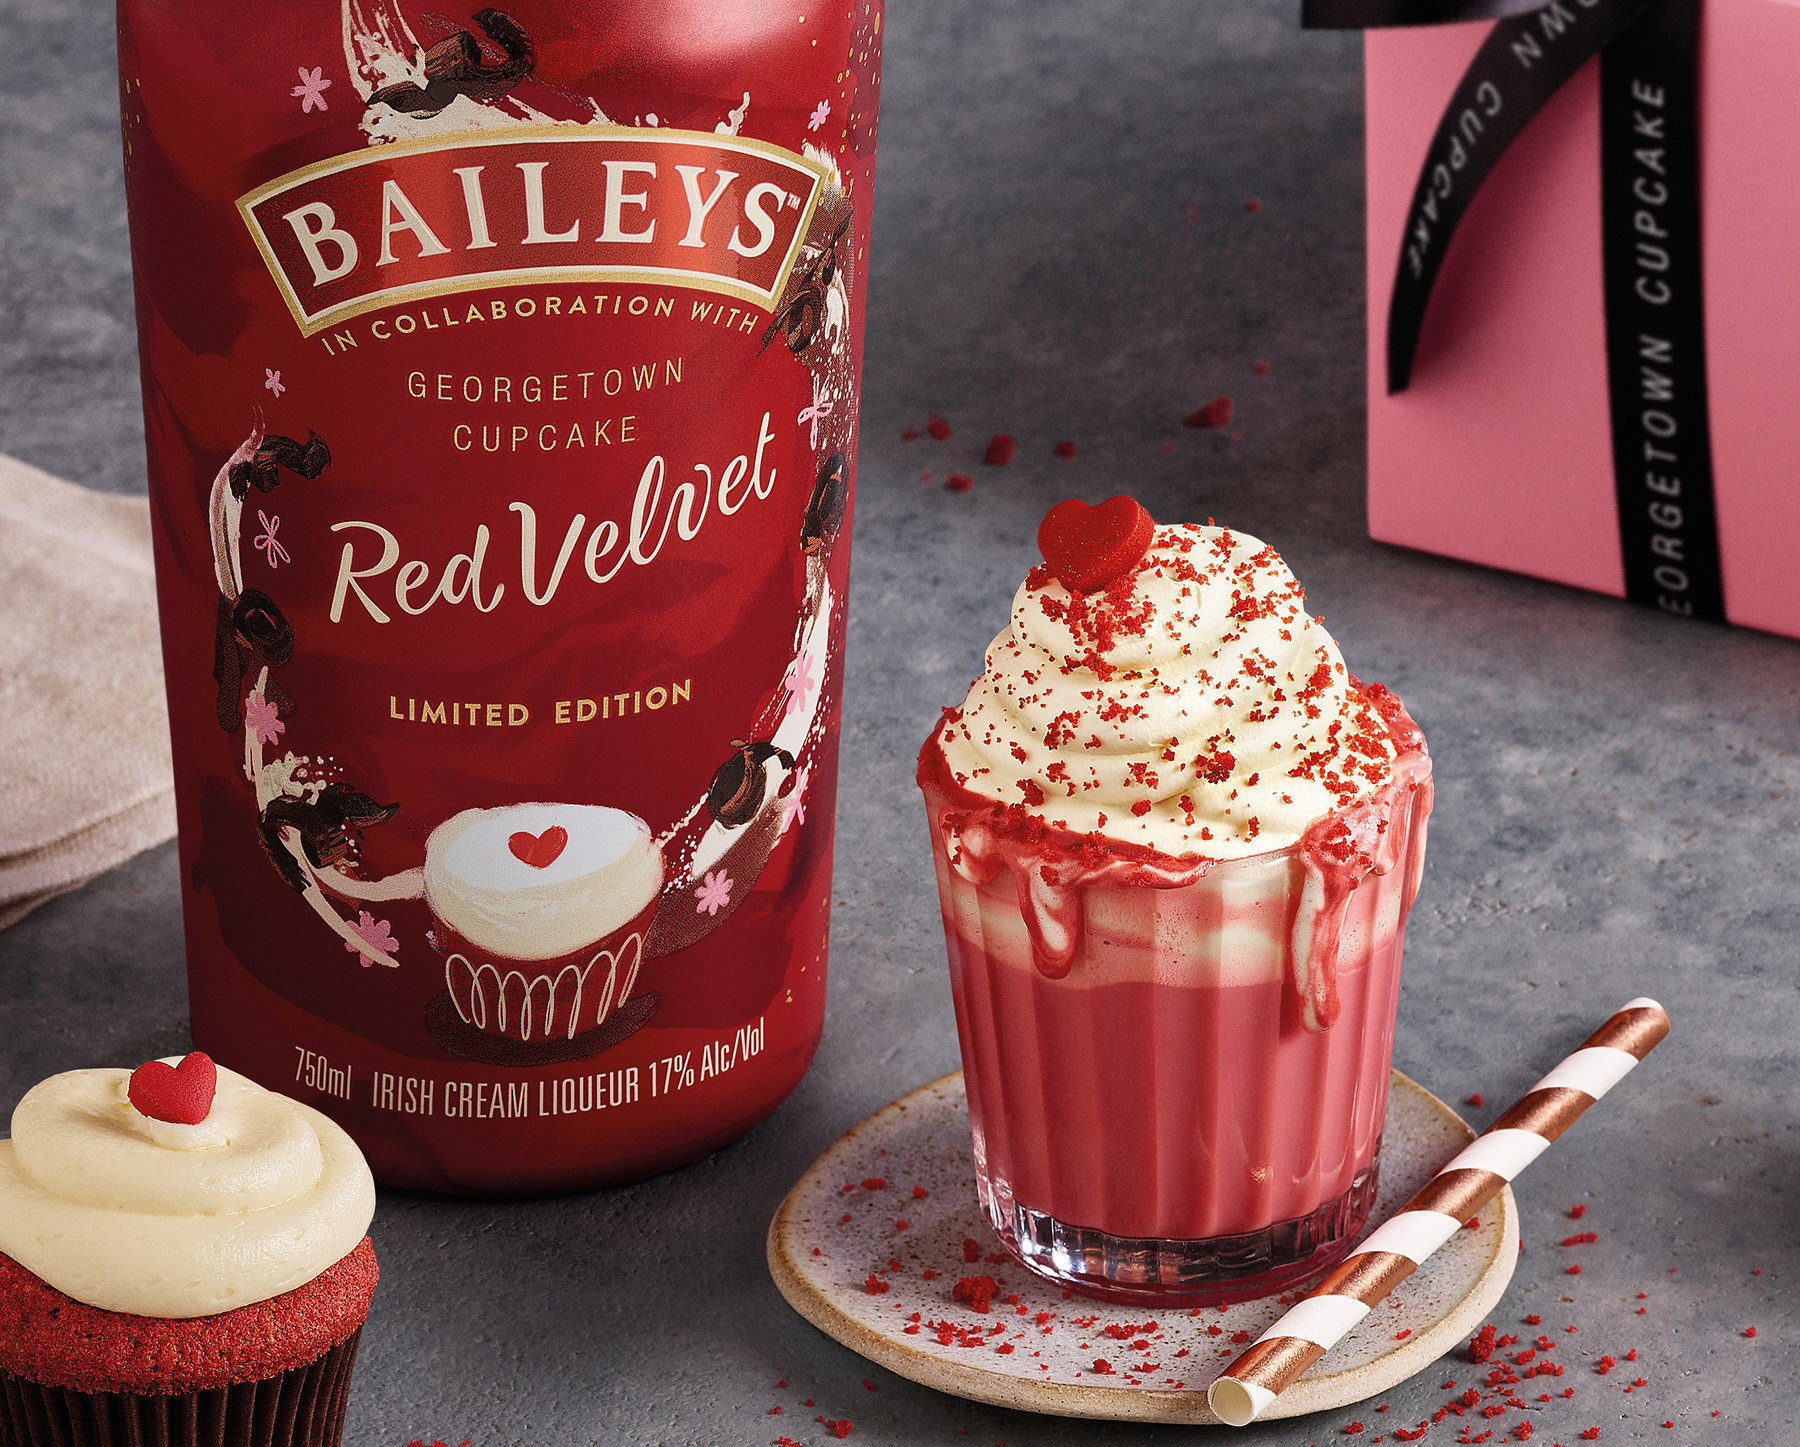 Baileys and Georgetown Cupcake Team up to Make Red Velvet Coffee Liqueur